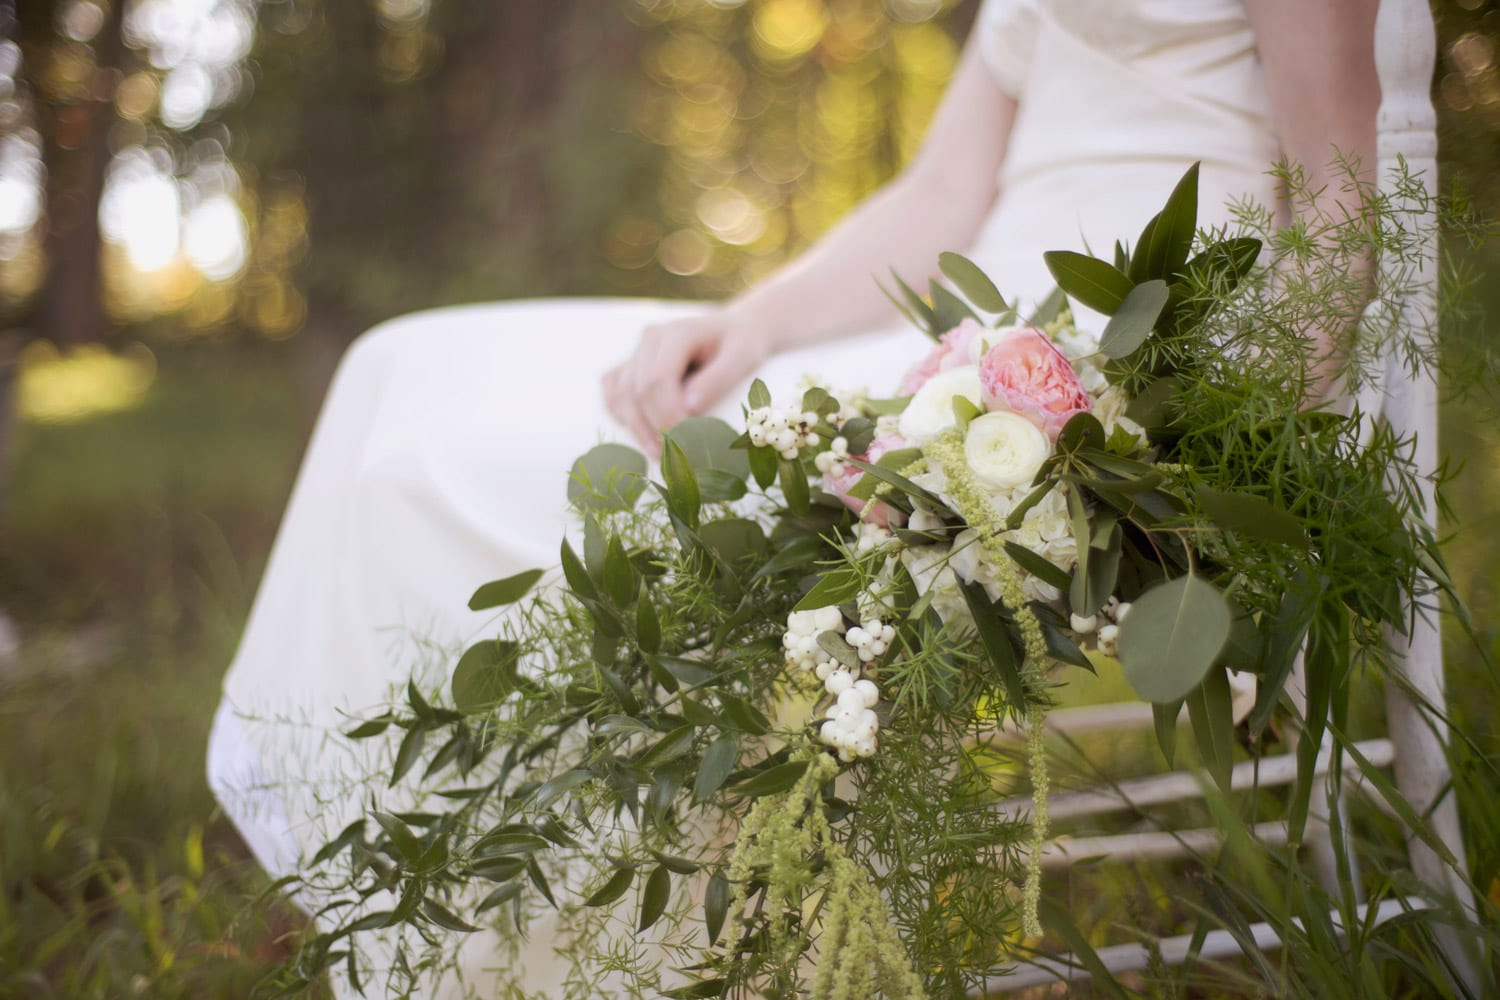 Bride holding flowers on chair in the woods